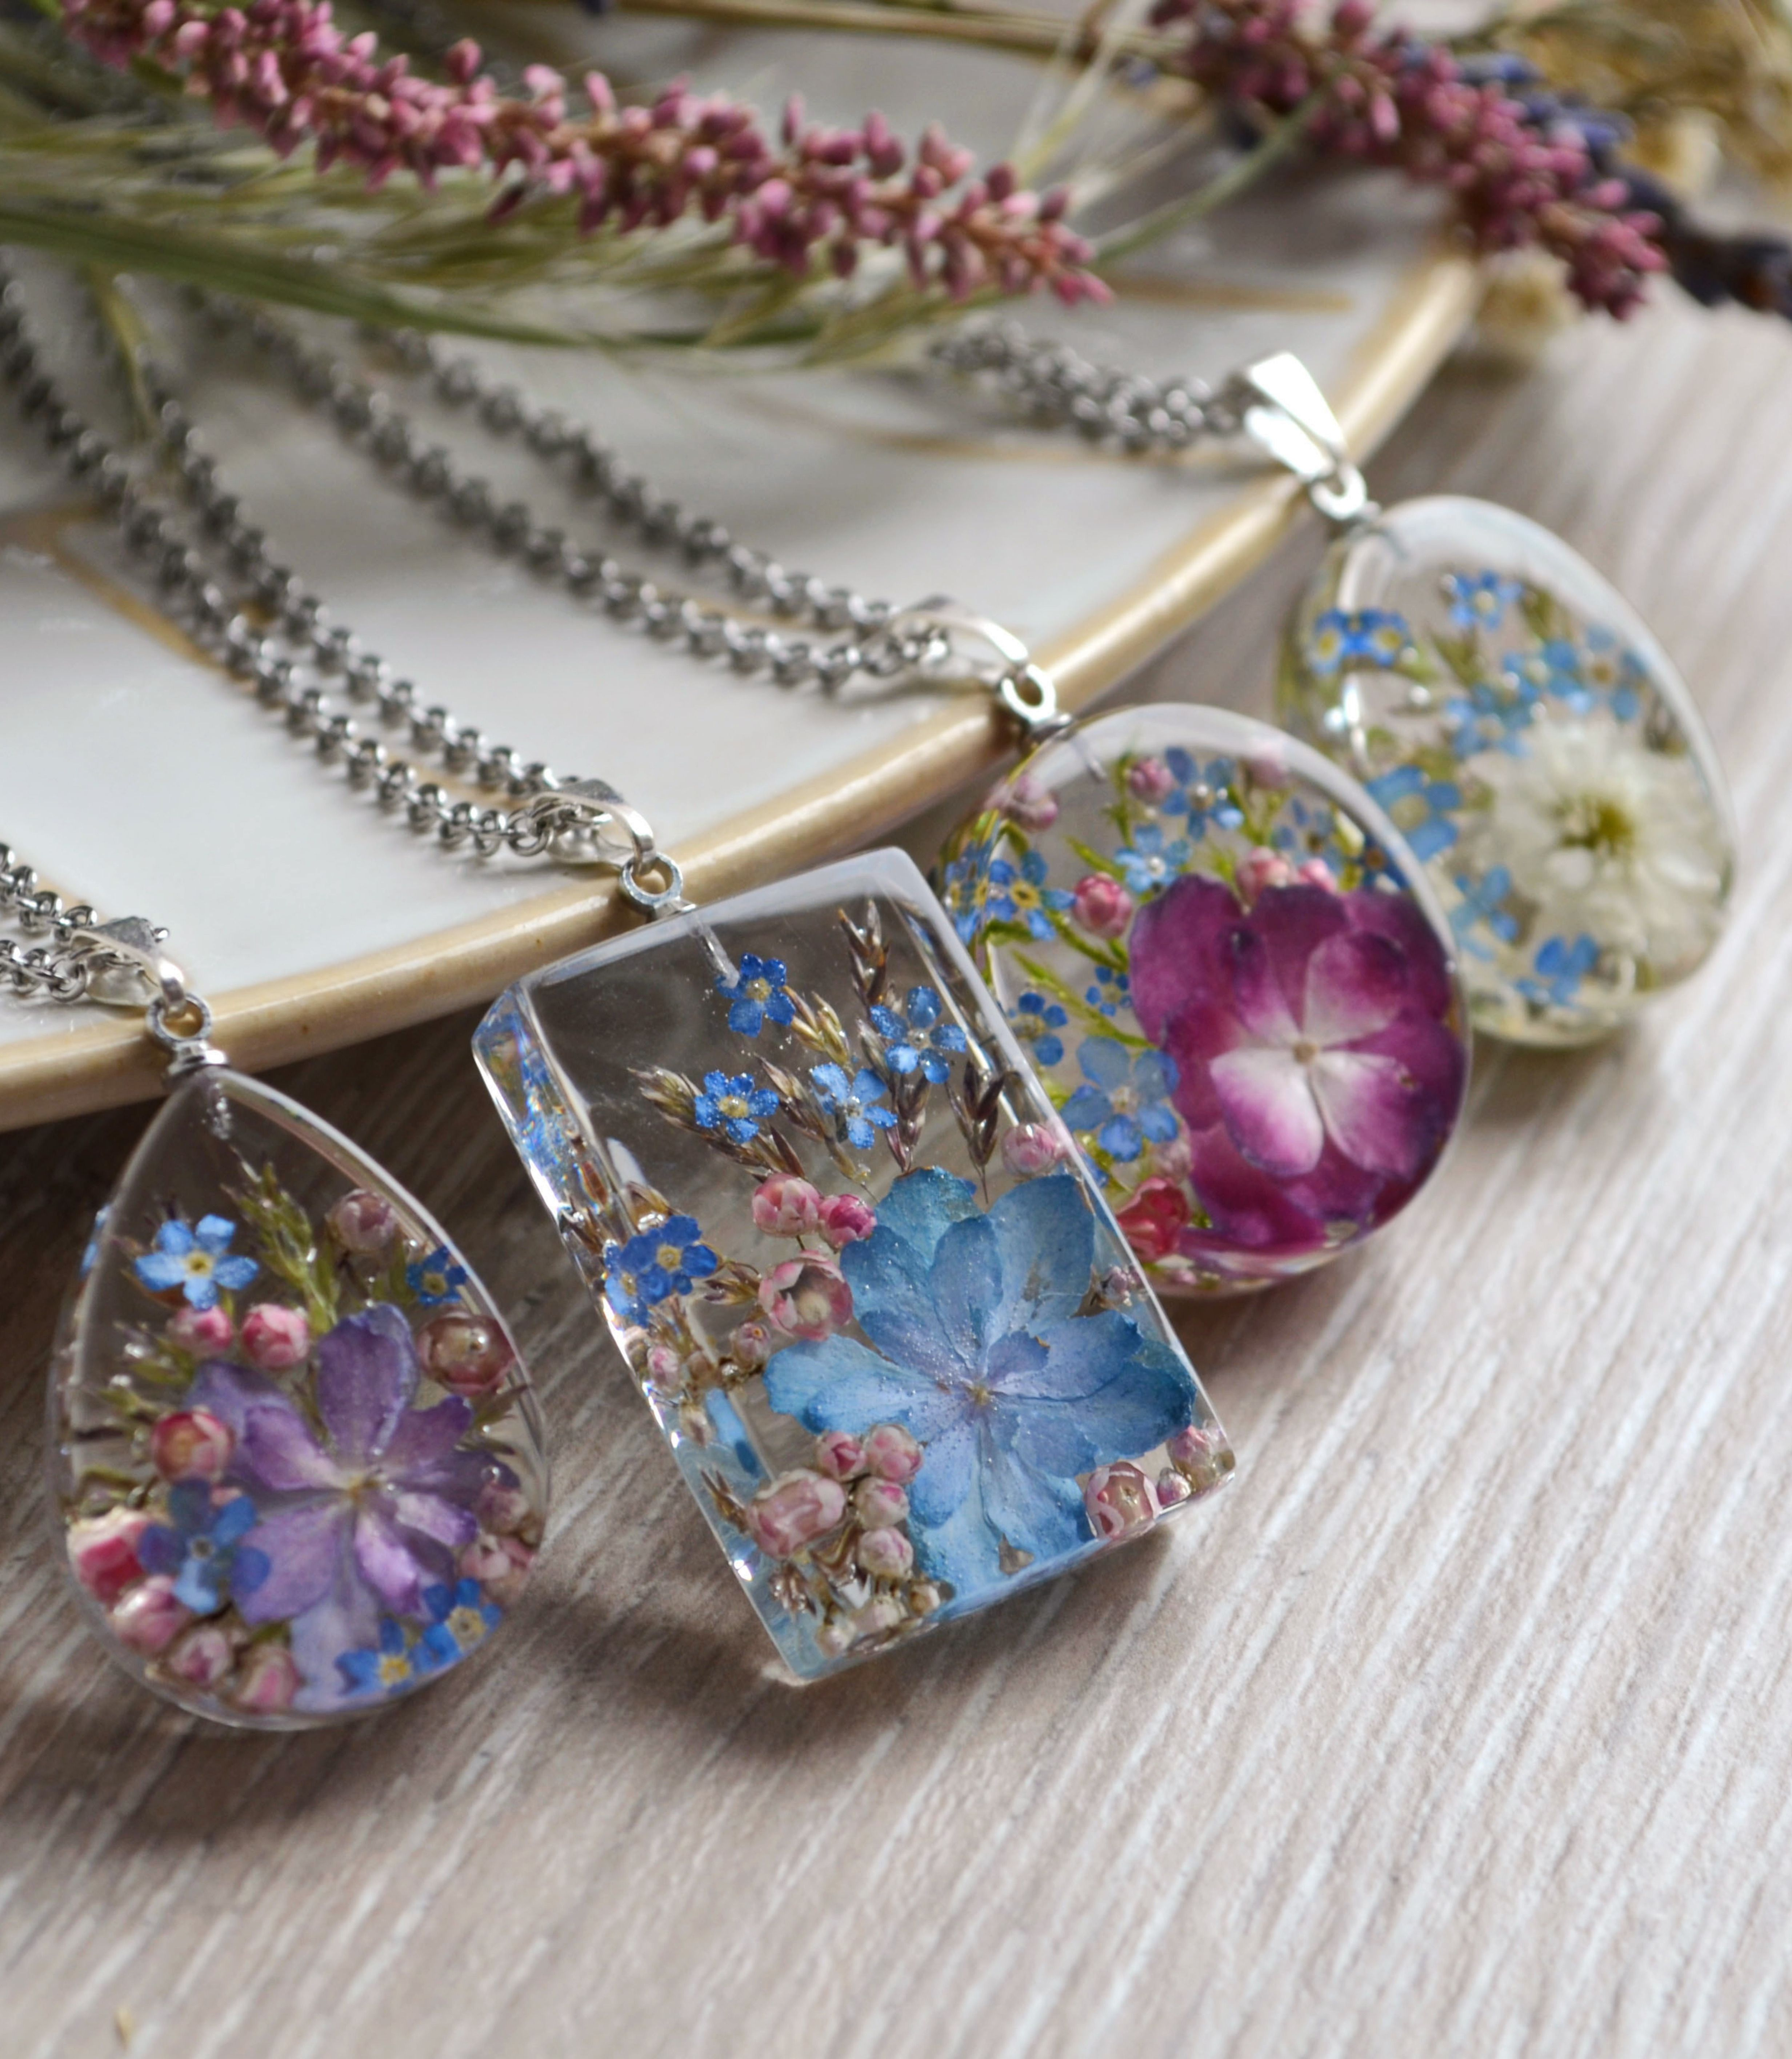 Pendants With Hydrangea Forget Me Nots And Rice Flower In Resin Resin Jewelry Flower Resin Jewelry Making Resin Jewellery